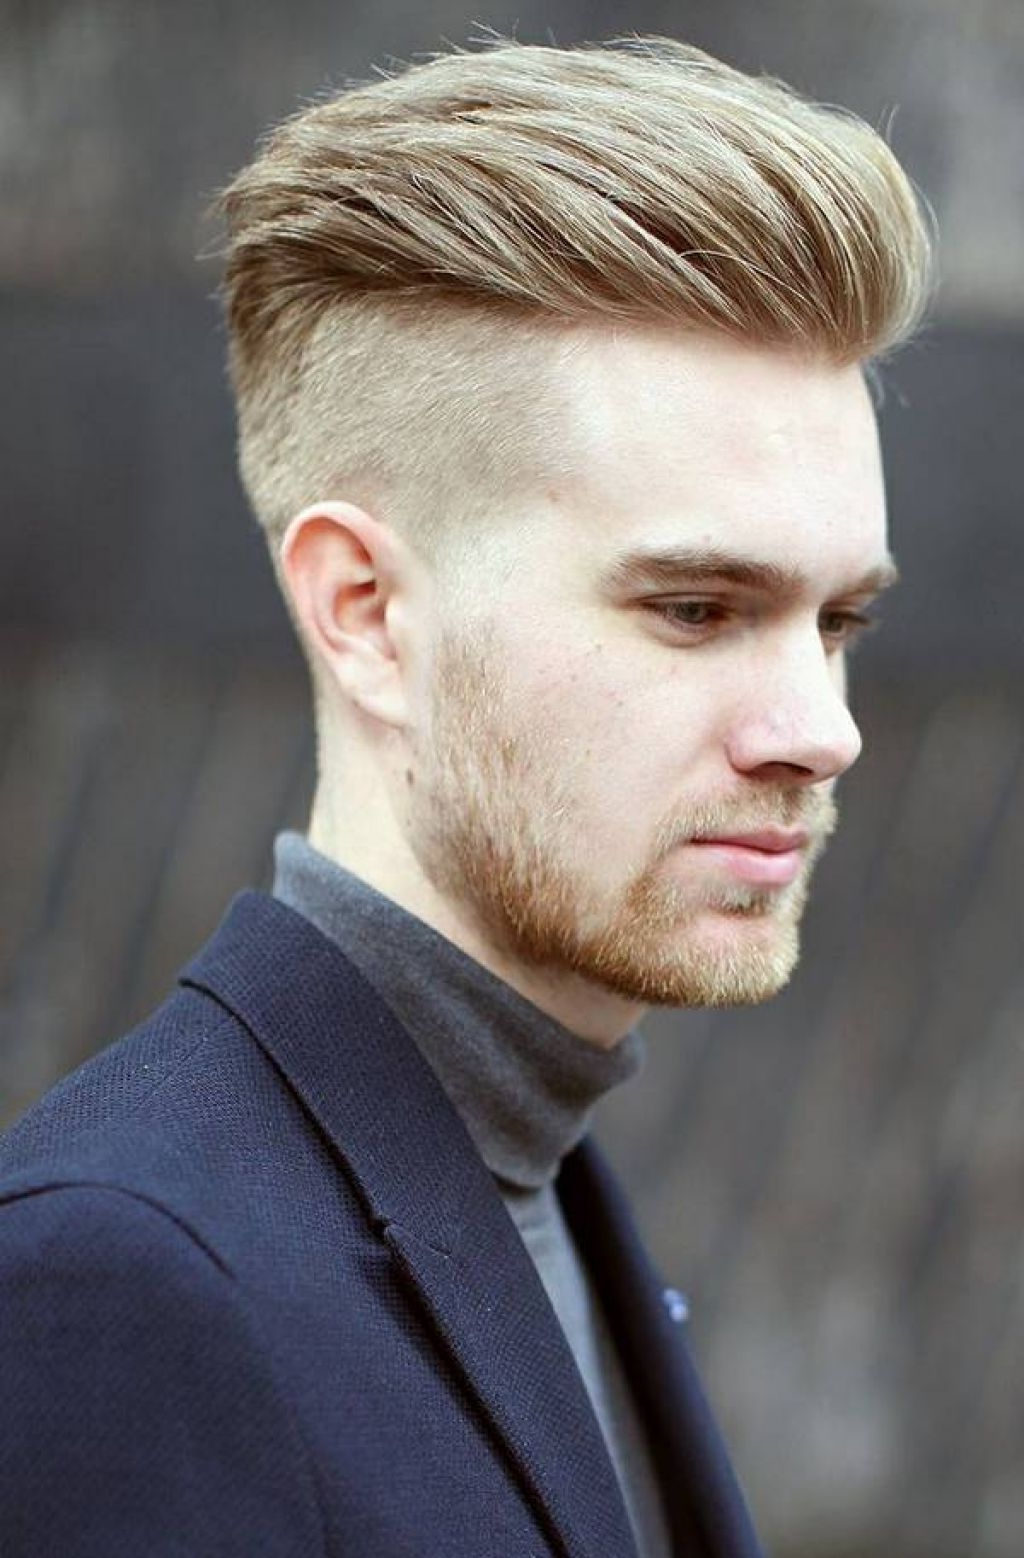 Hair Cuts : Awesome Trendy Males Mens For Curly Hair Short With Regard To Fashionable Medium Haircuts With Shaved Sides (View 9 of 20)